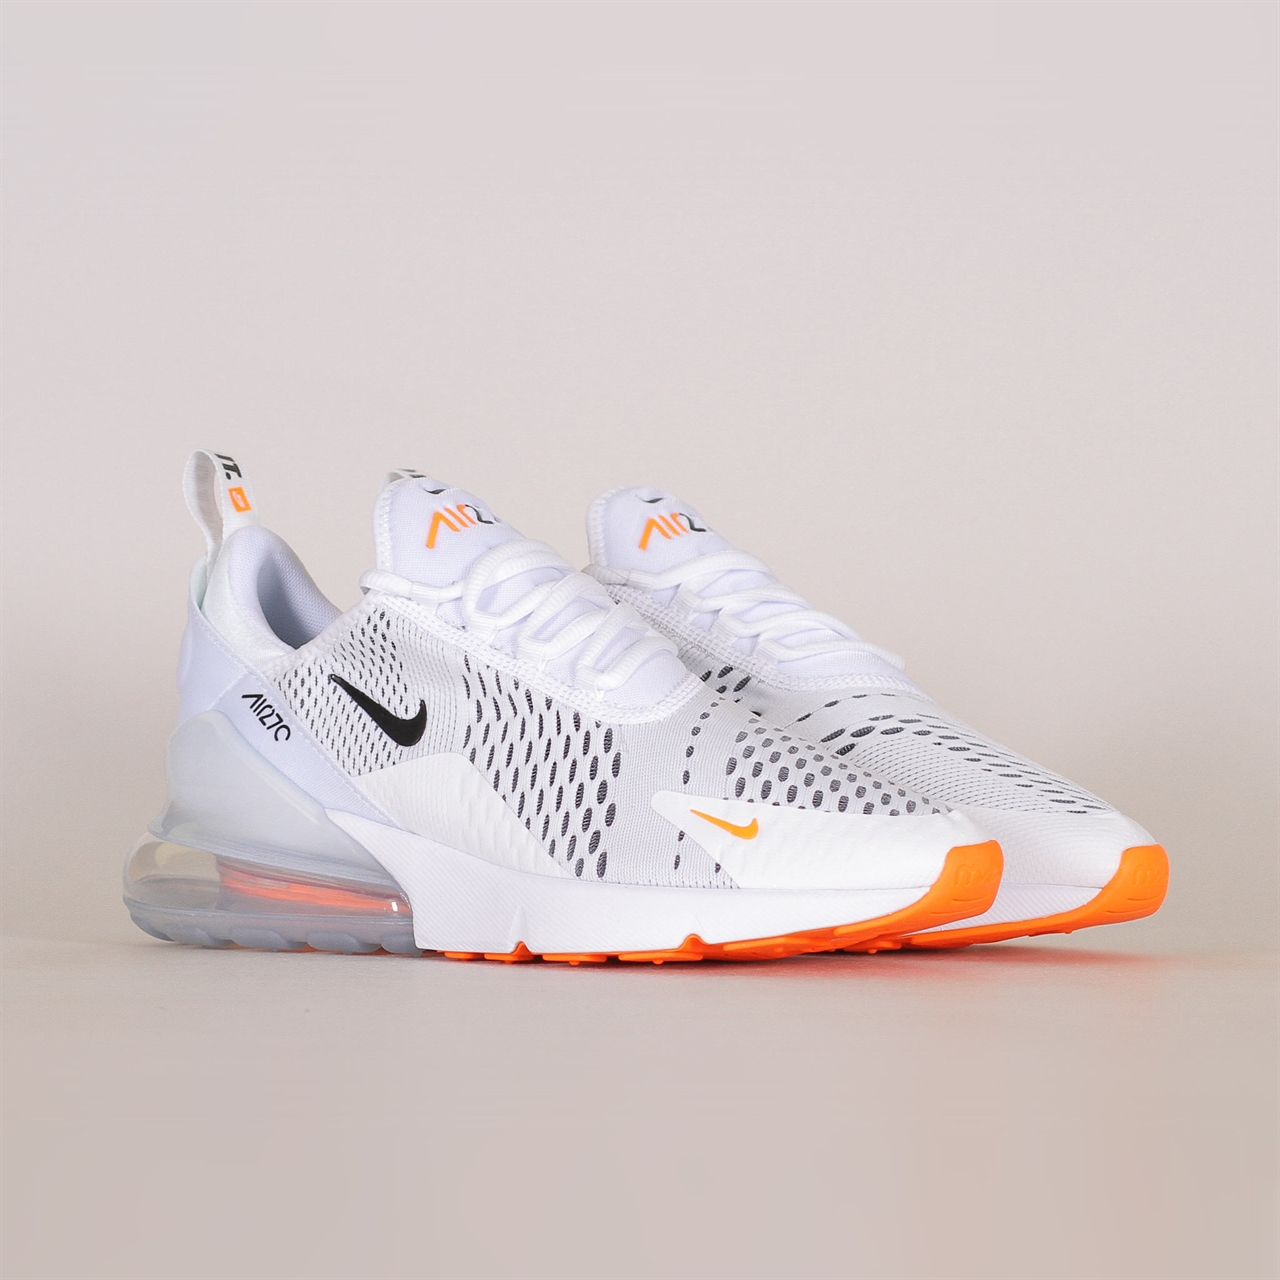 61137b3c8b0 Air Max 270 (AH8050-106). 169 169EUR   a pair. WHITE BLACK-TOTAL ORANGE